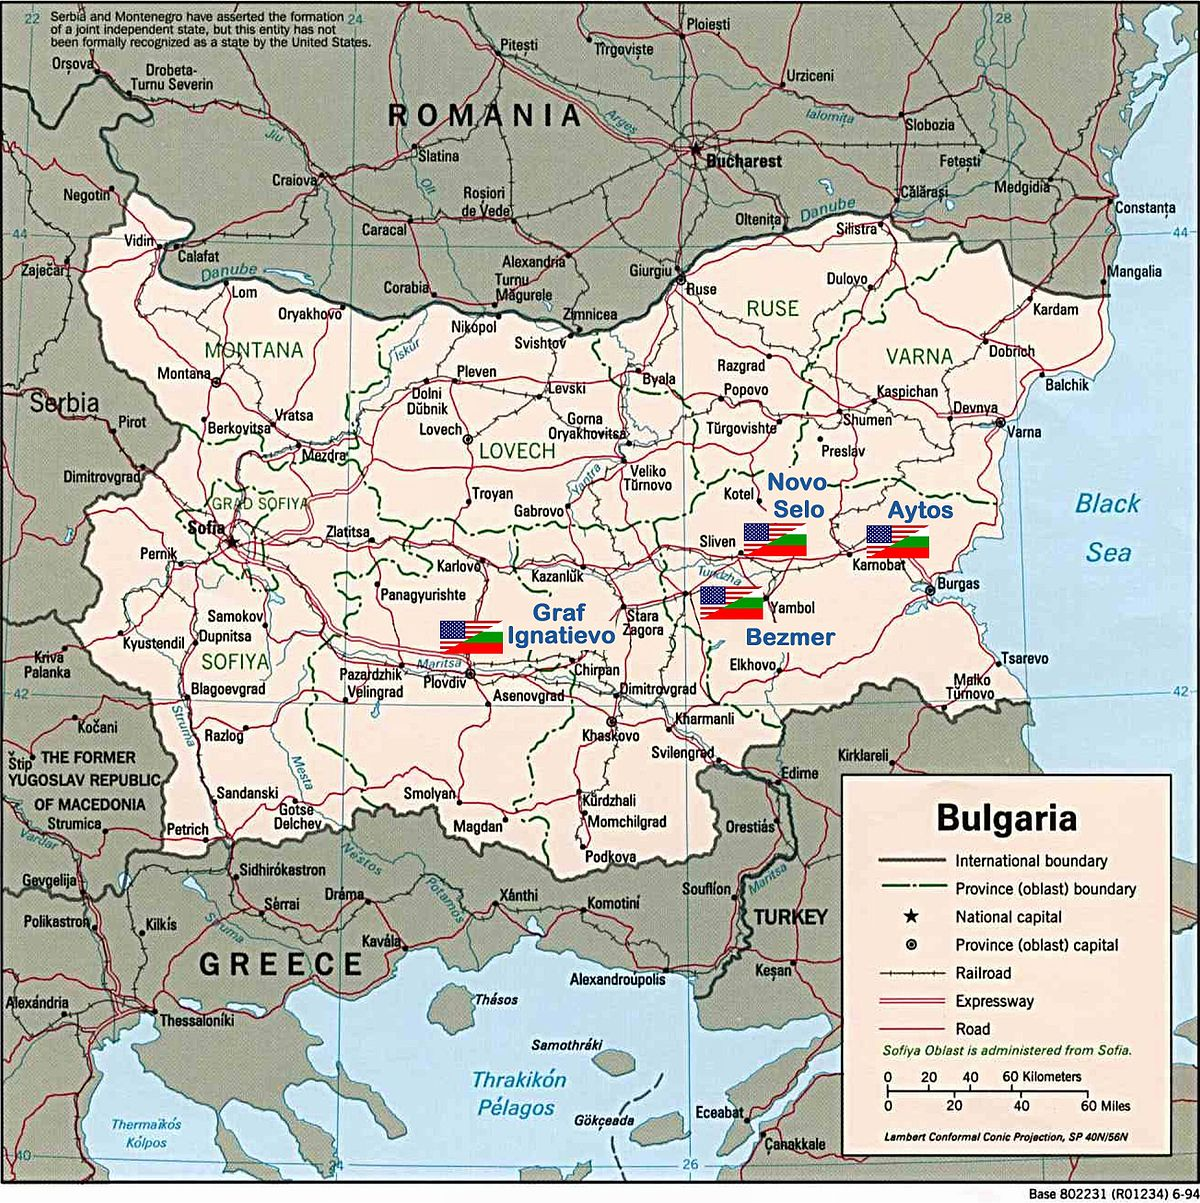 BulgarianAmerican Joint Military Facilities Wikipedia